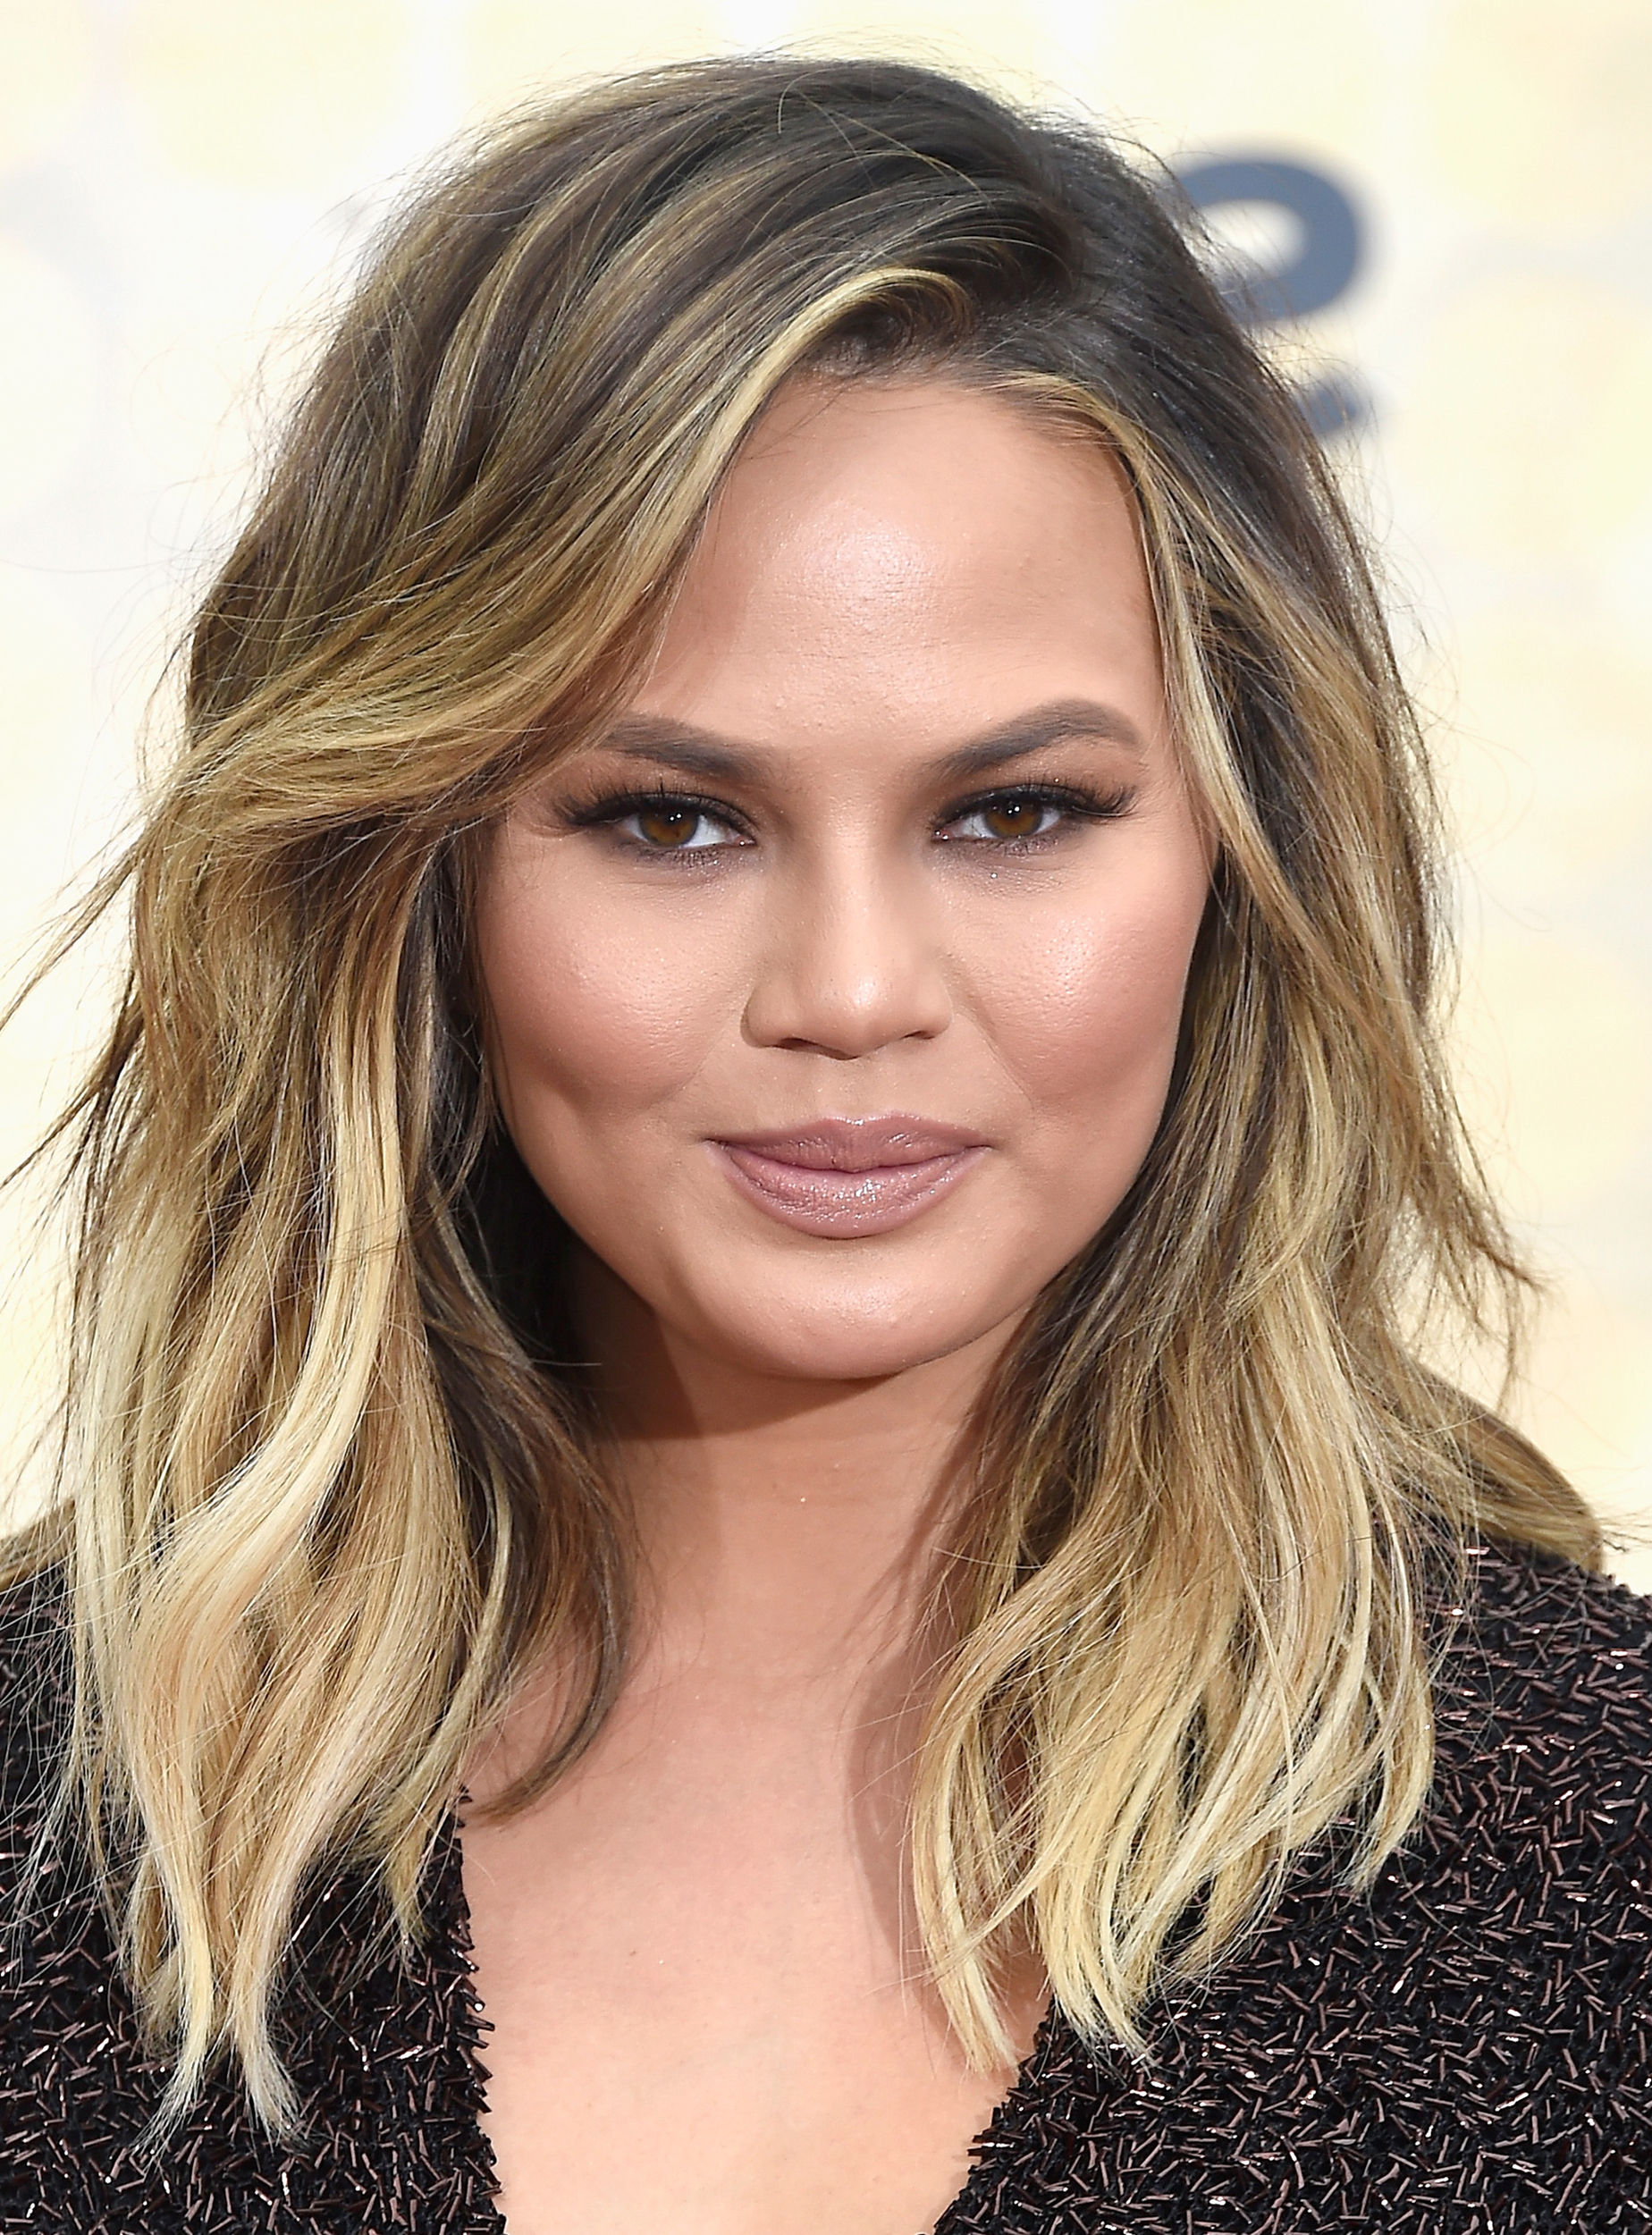 28 Best Hairstyles For Round Faces Within Recent Lauren Conrad Medium Haircuts (View 2 of 20)